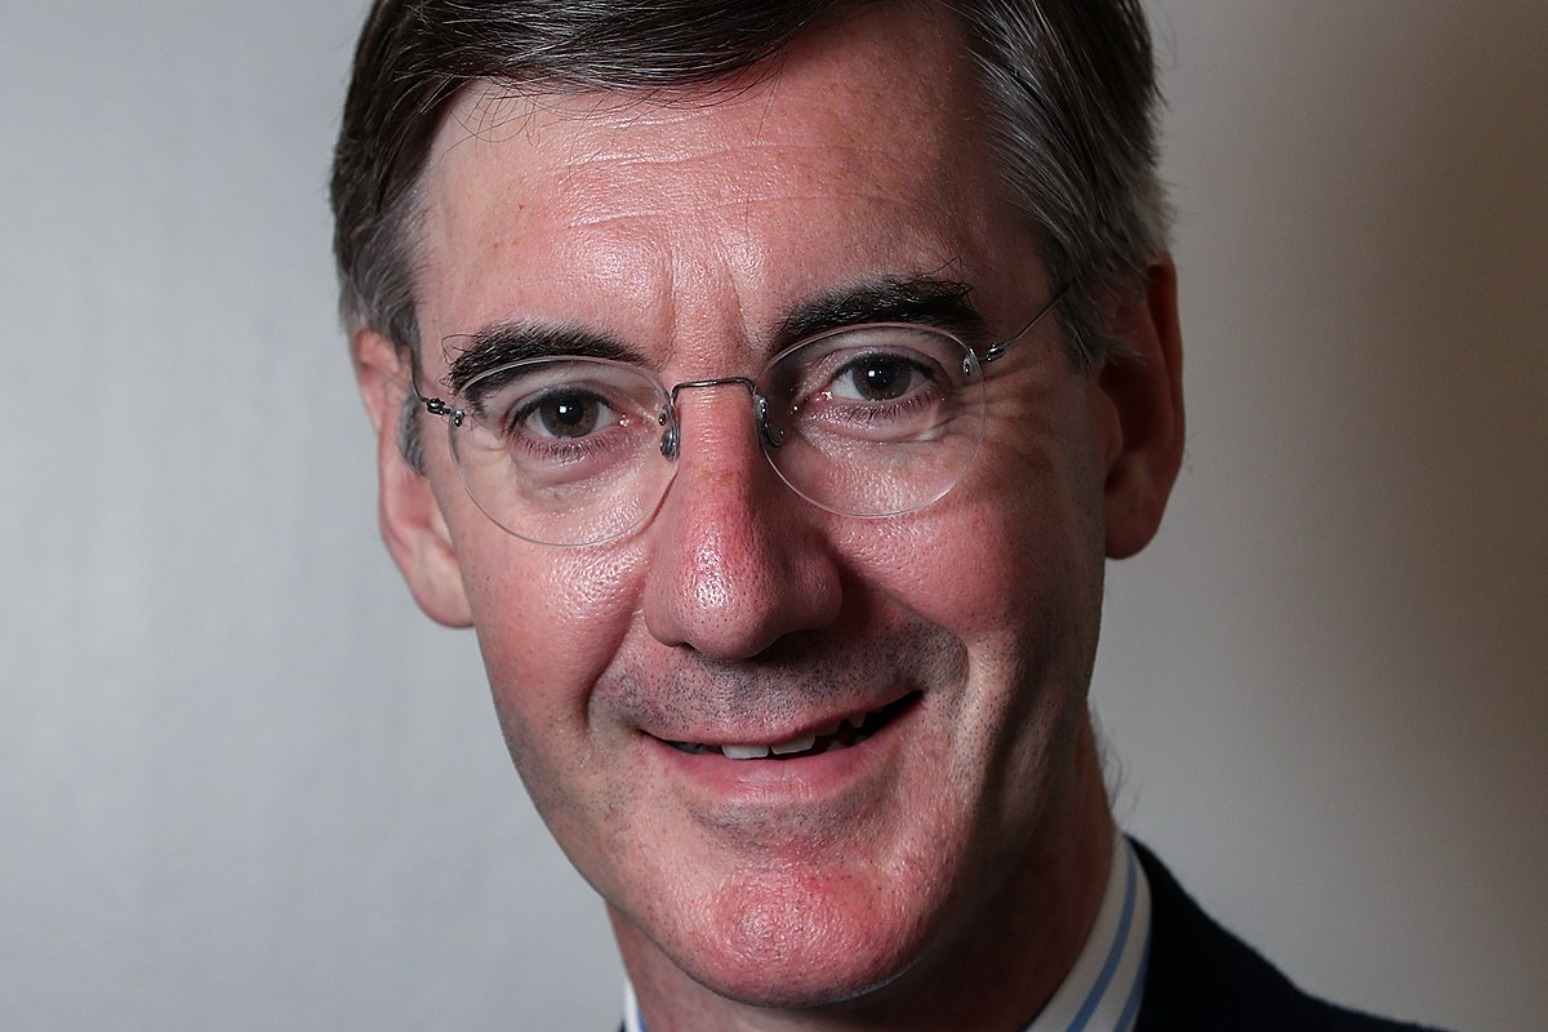 Rees-Mogg says taxes have hit 'the limit' after PM fails to rule out more rises